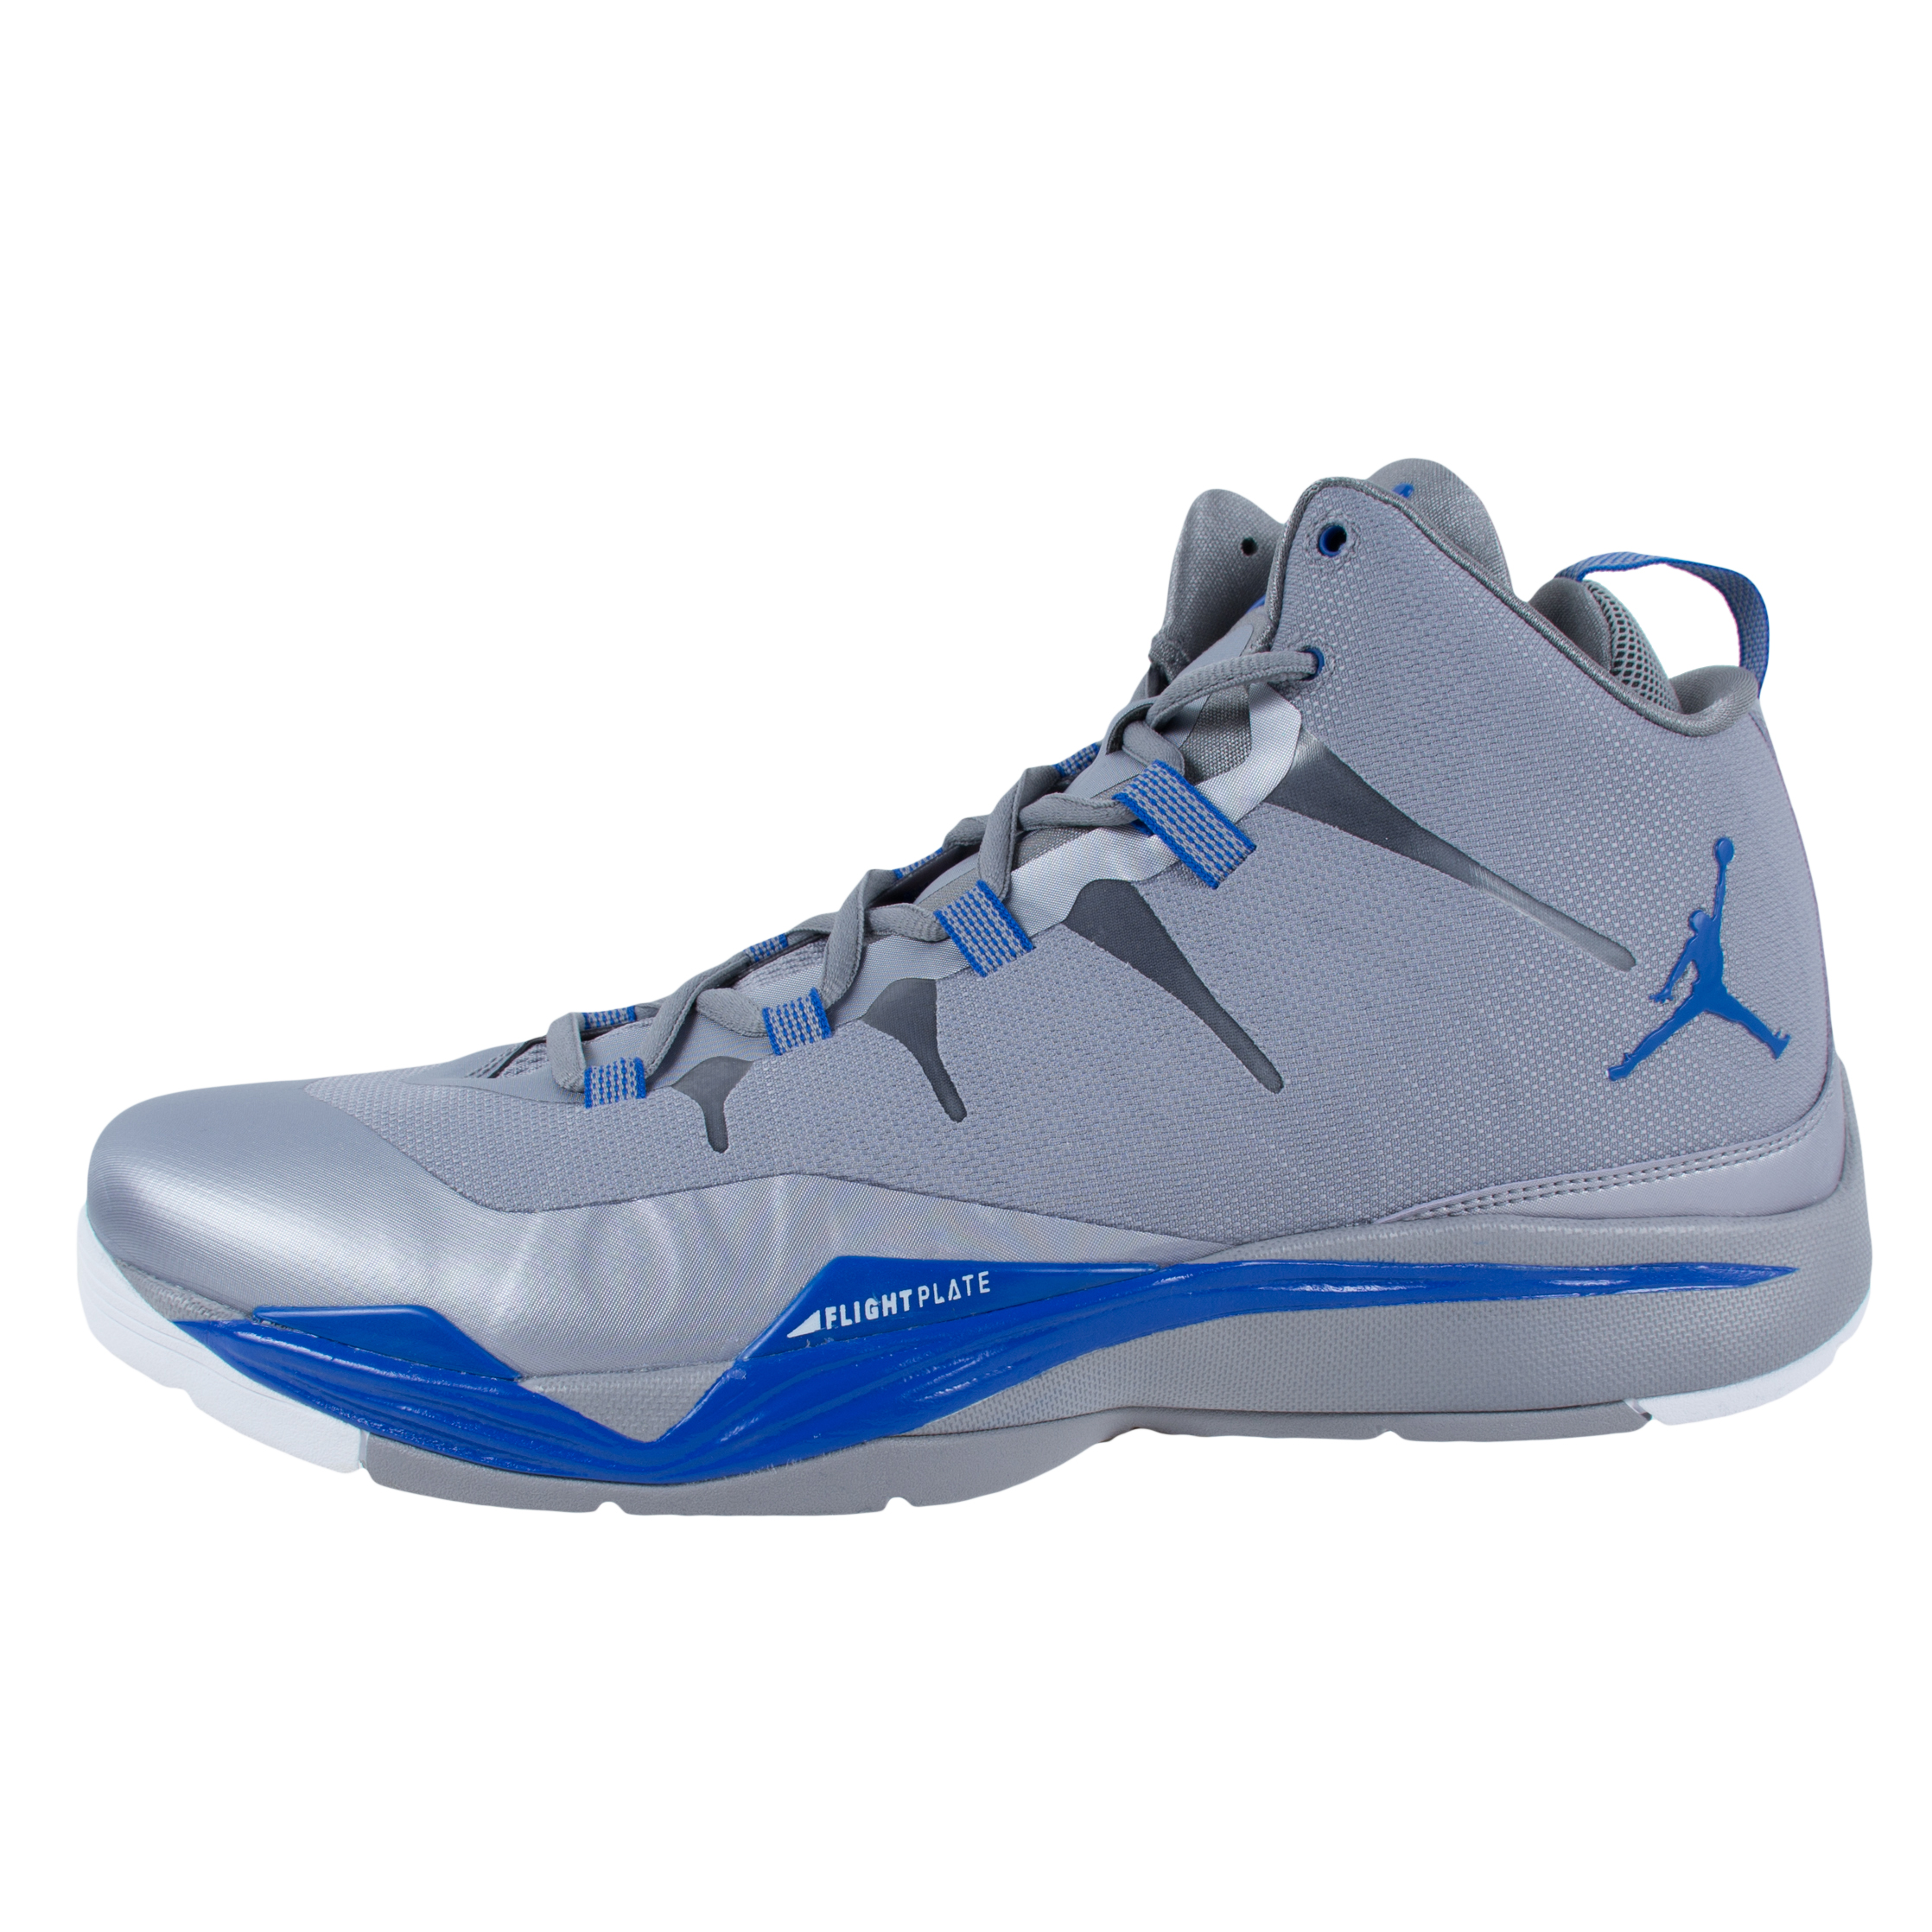 hot sale online 1f3e1 957c2 ... promo code for nike jordan super.fly 2 basketball shoes cement grey  blue 599945 007